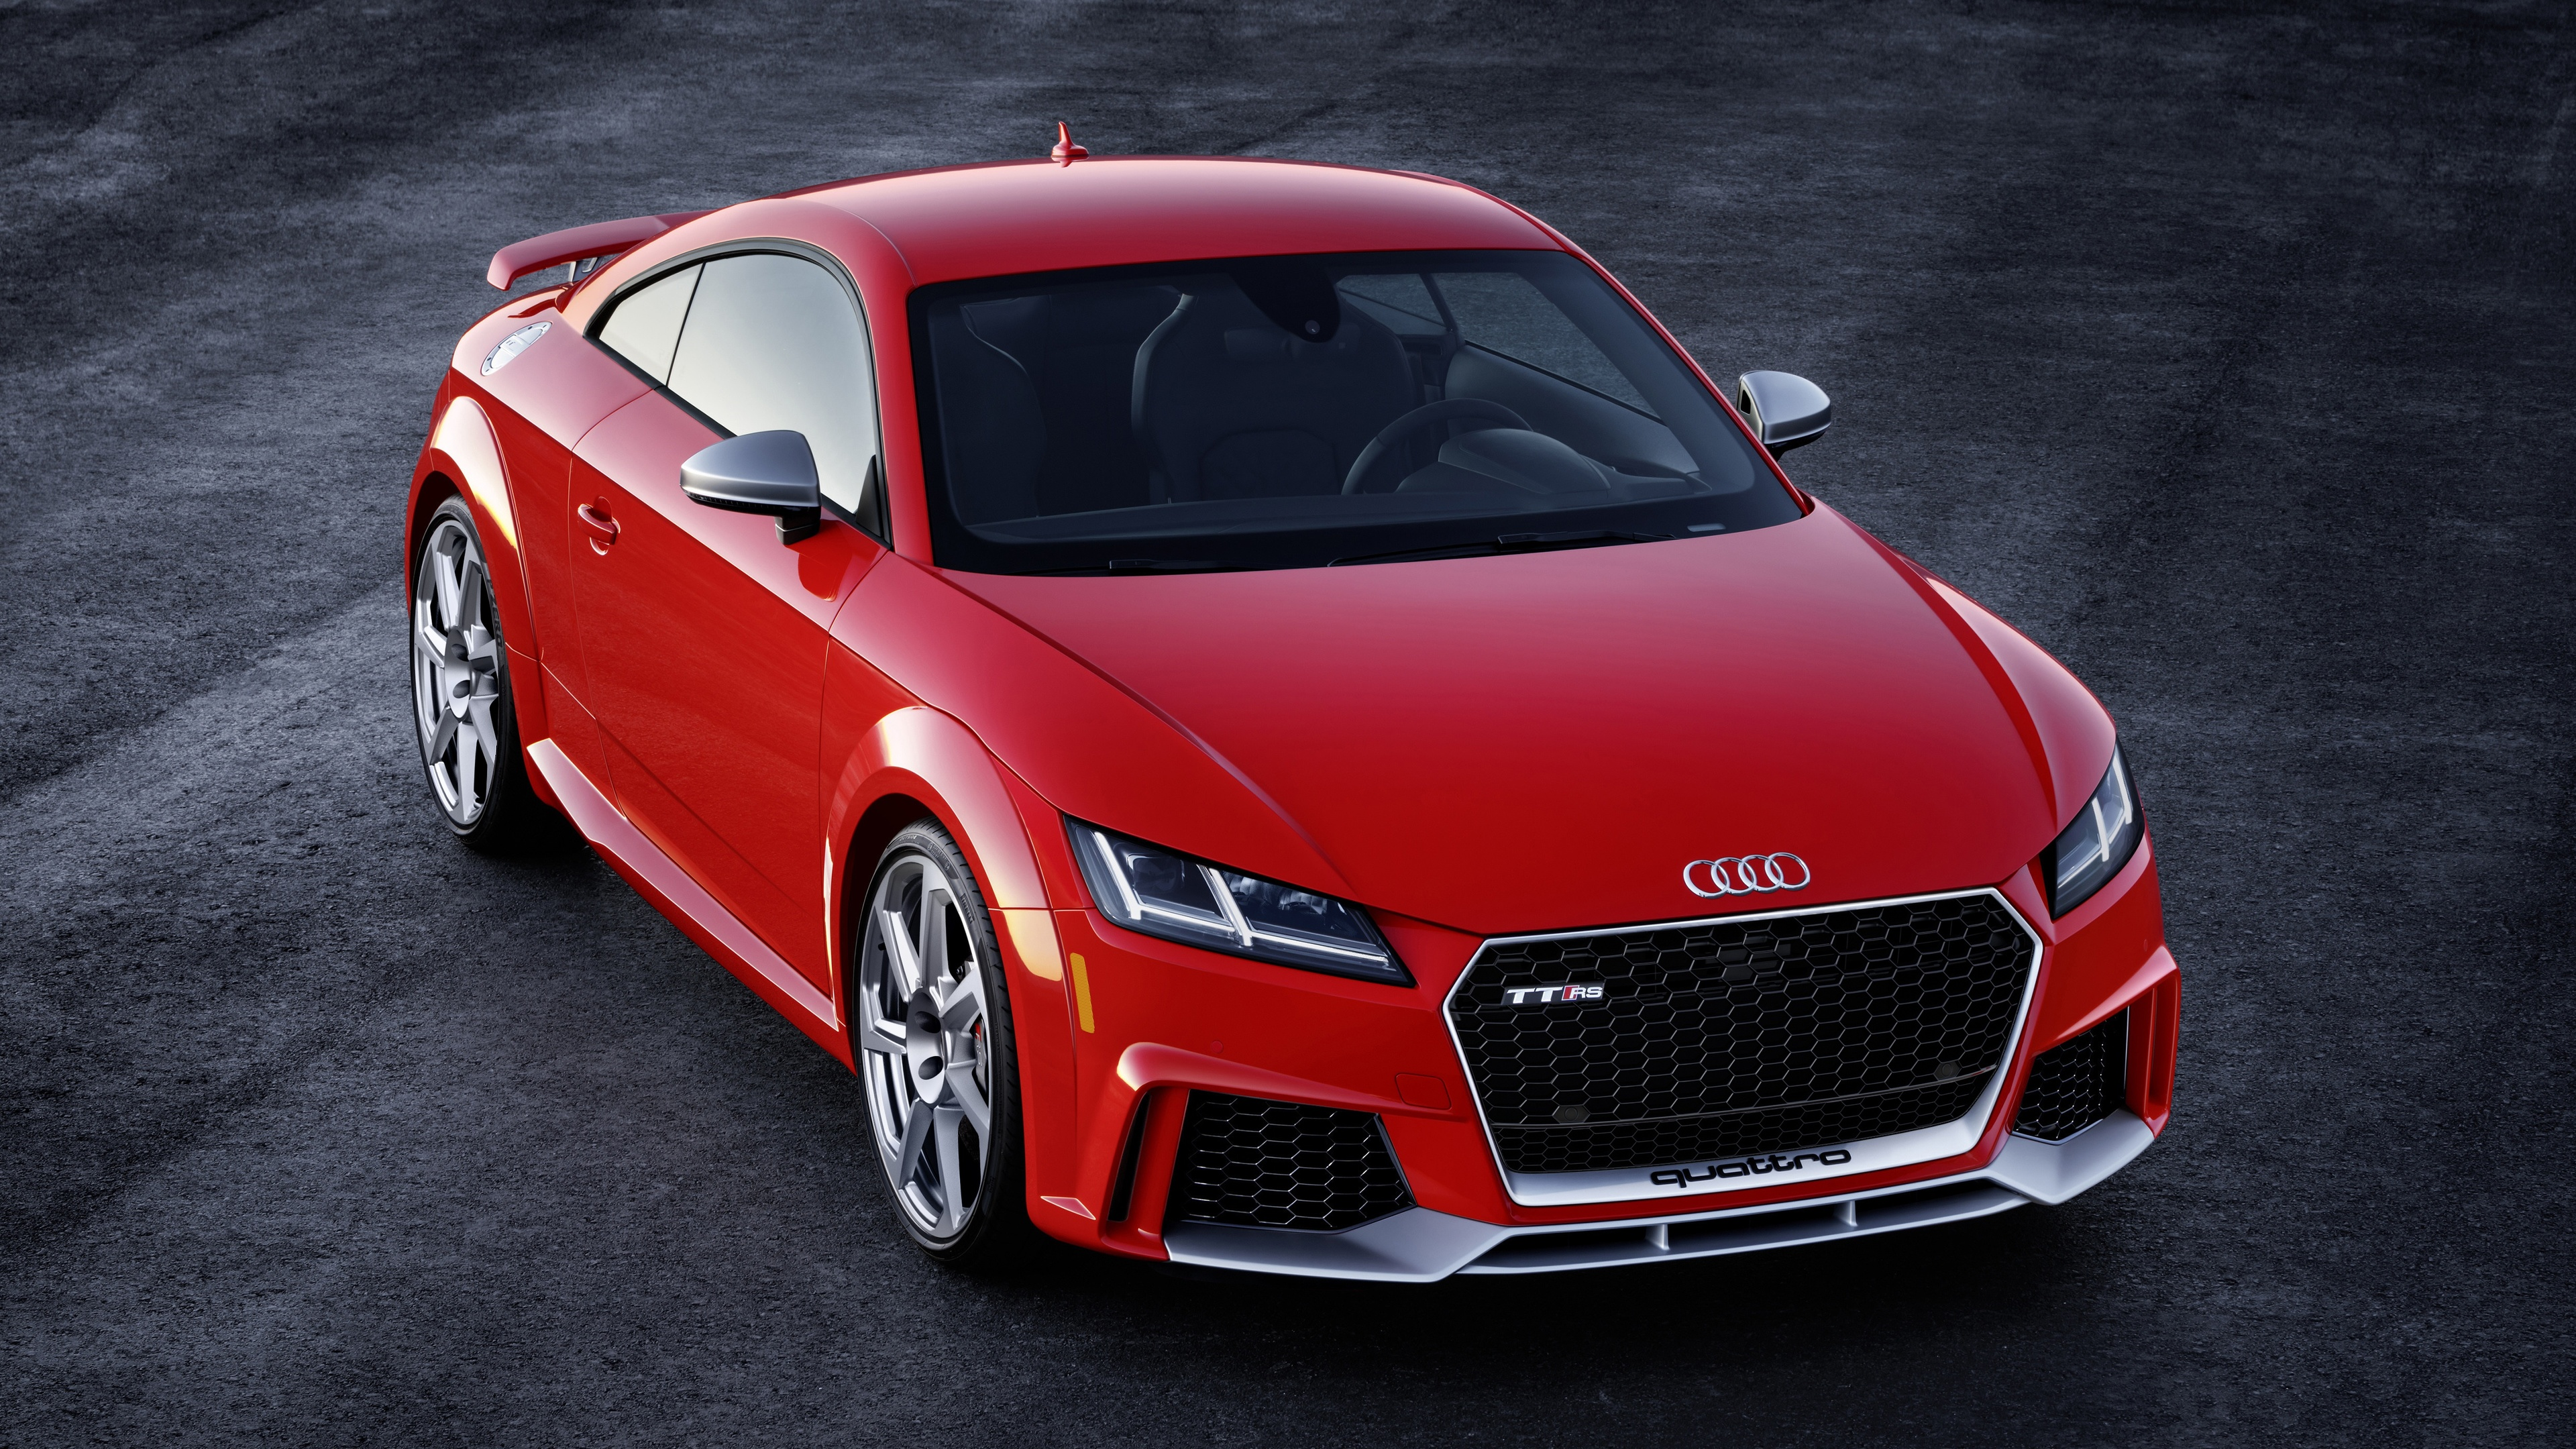 audi 2018 rs tt 1539108867 - Audi 2018 RS TT - hd-wallpapers, audi wallpapers, audi tt rs wallpapers, 4k-wallpapers, 2018 cars wallpapers